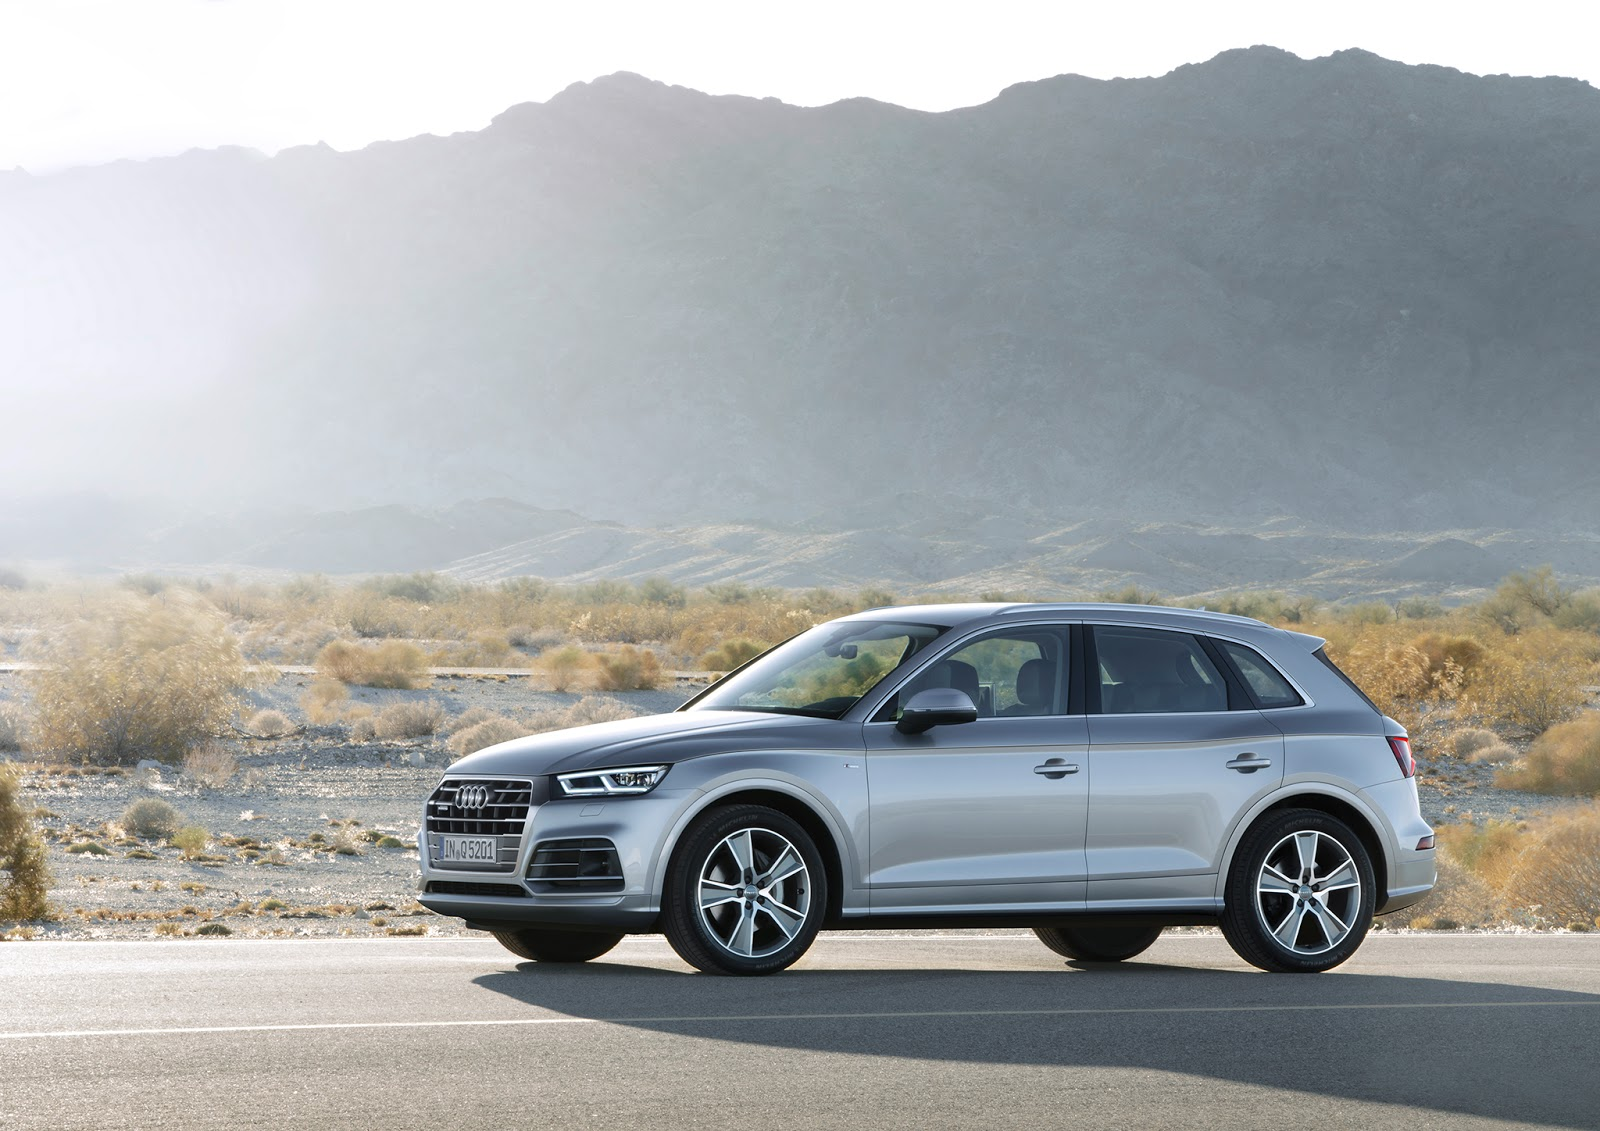 Audi Closes With Sold Vehicles Worldwide DroCars - Audi worldwide